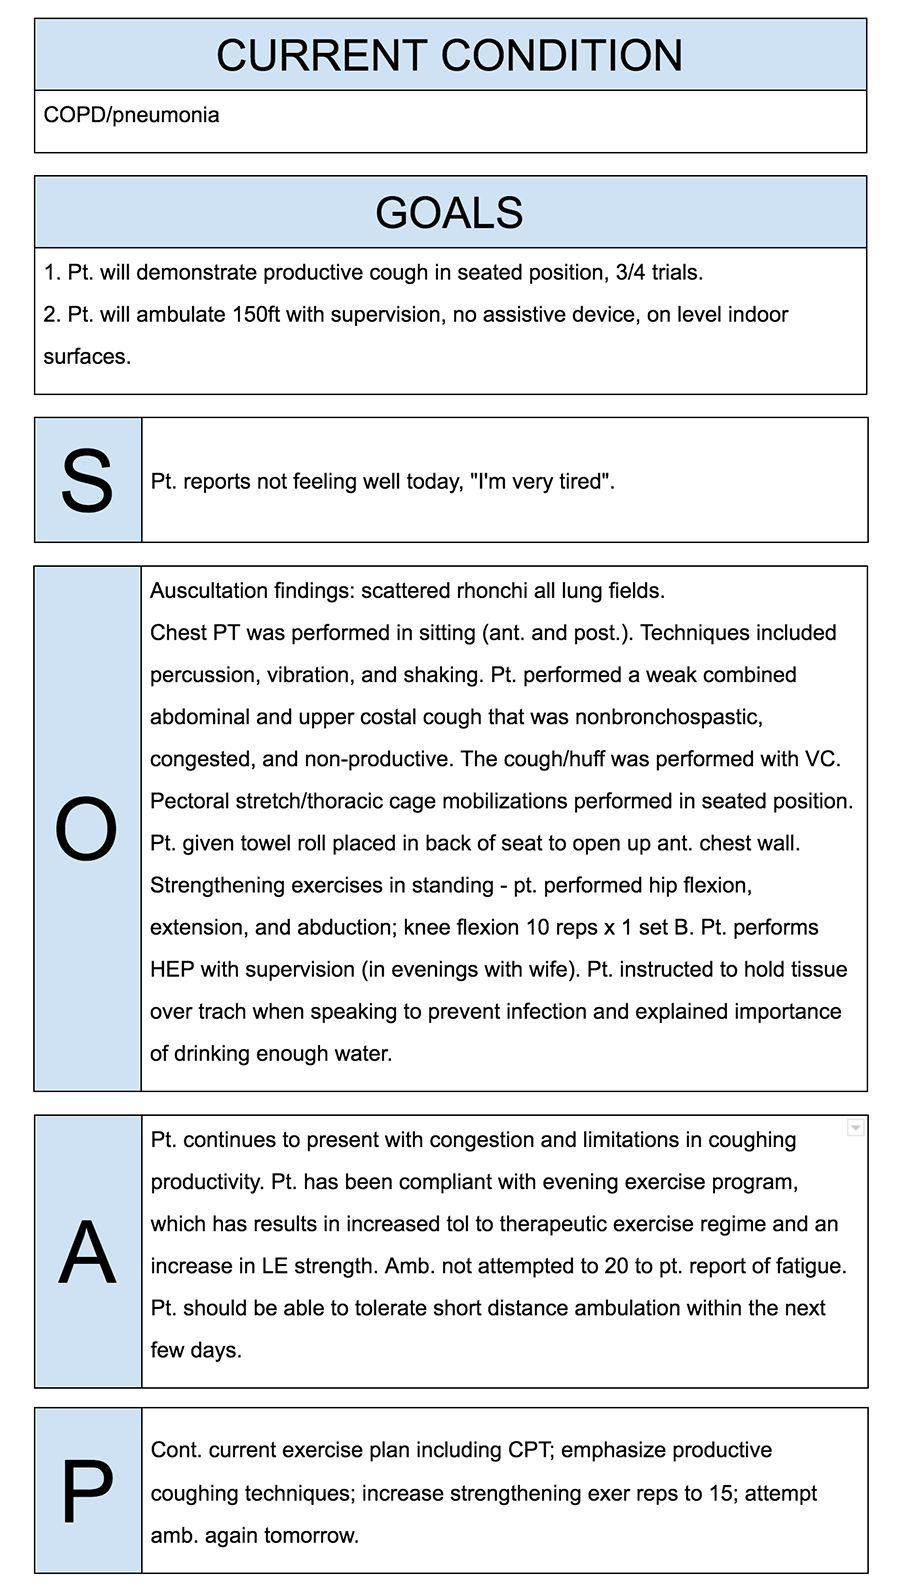 Physical Therapist SOAP Notes Example Soap note, Be an